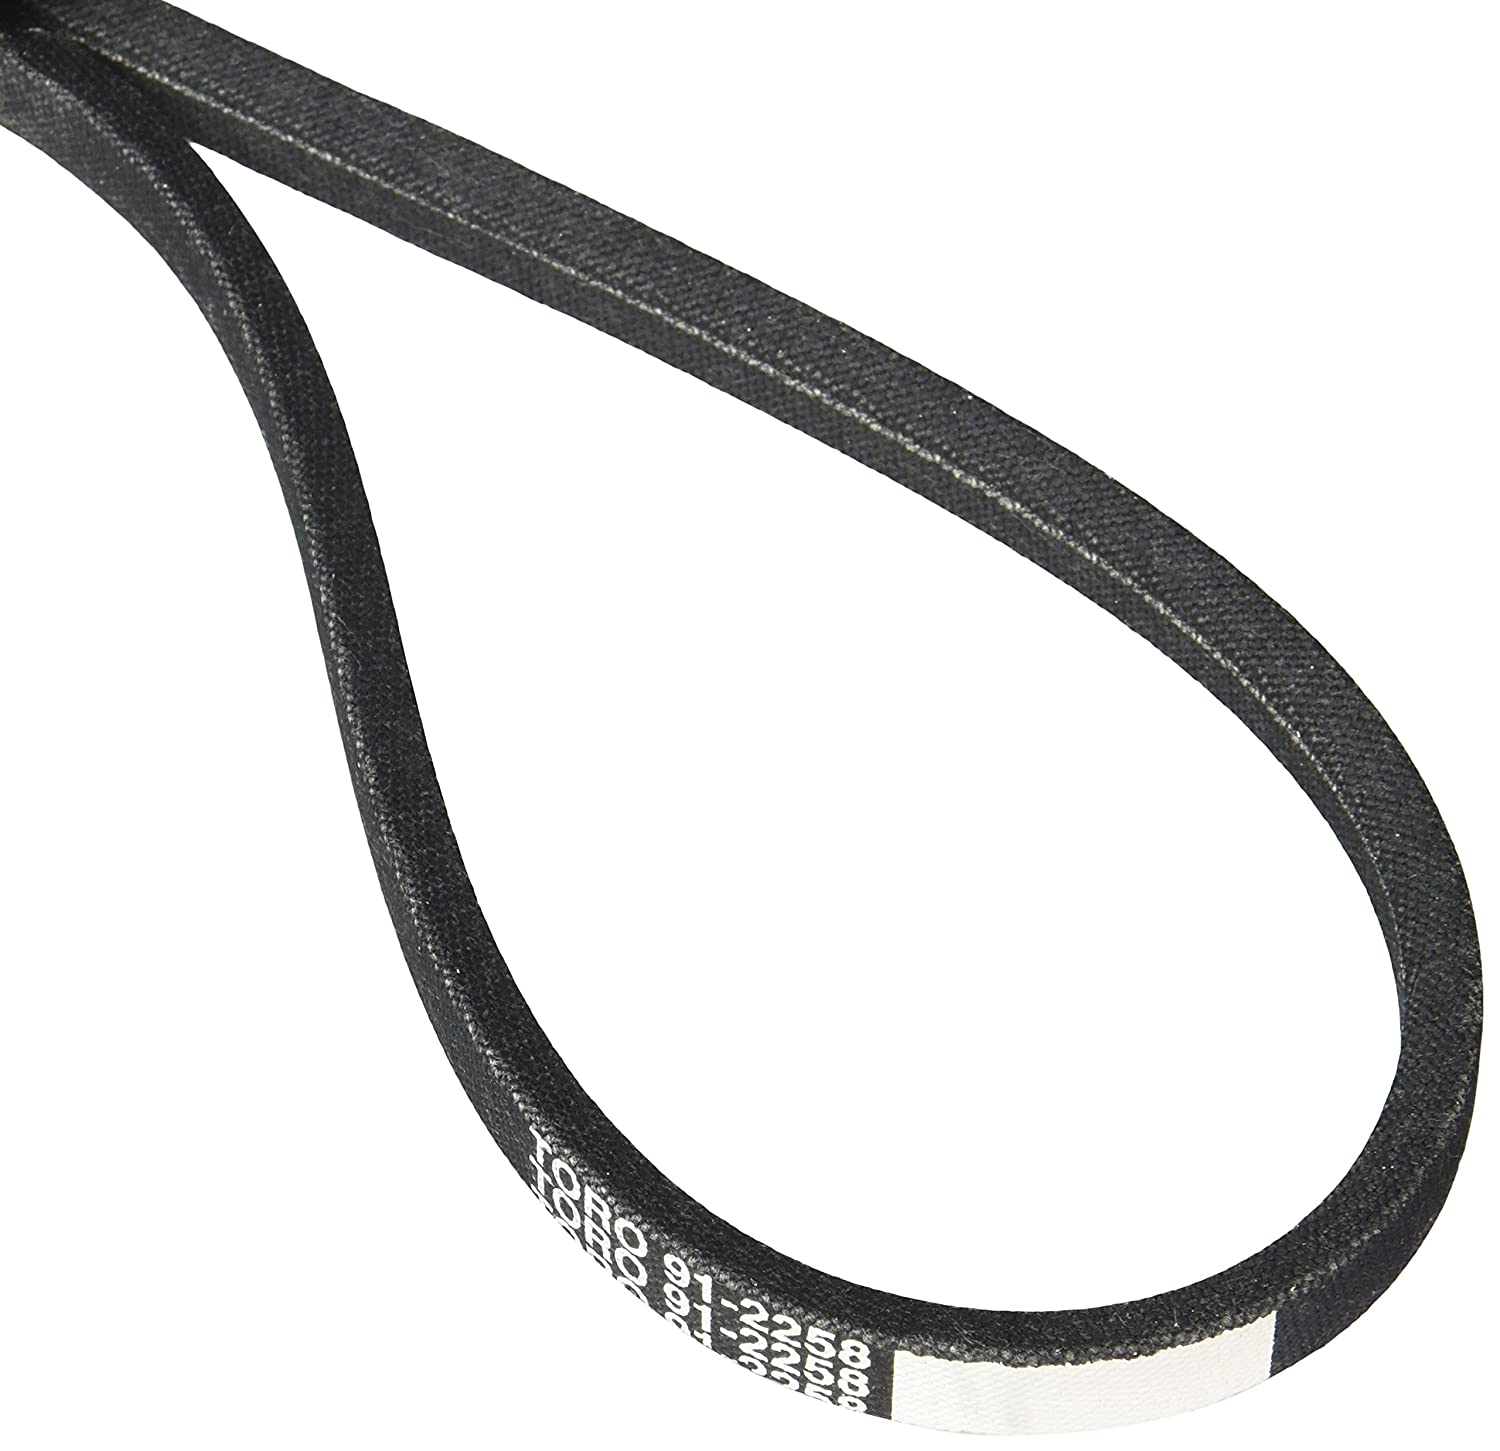 "Amazon Toro 91 2258 V Belt 35"" x 3 8"" Lawn Mower Belts"